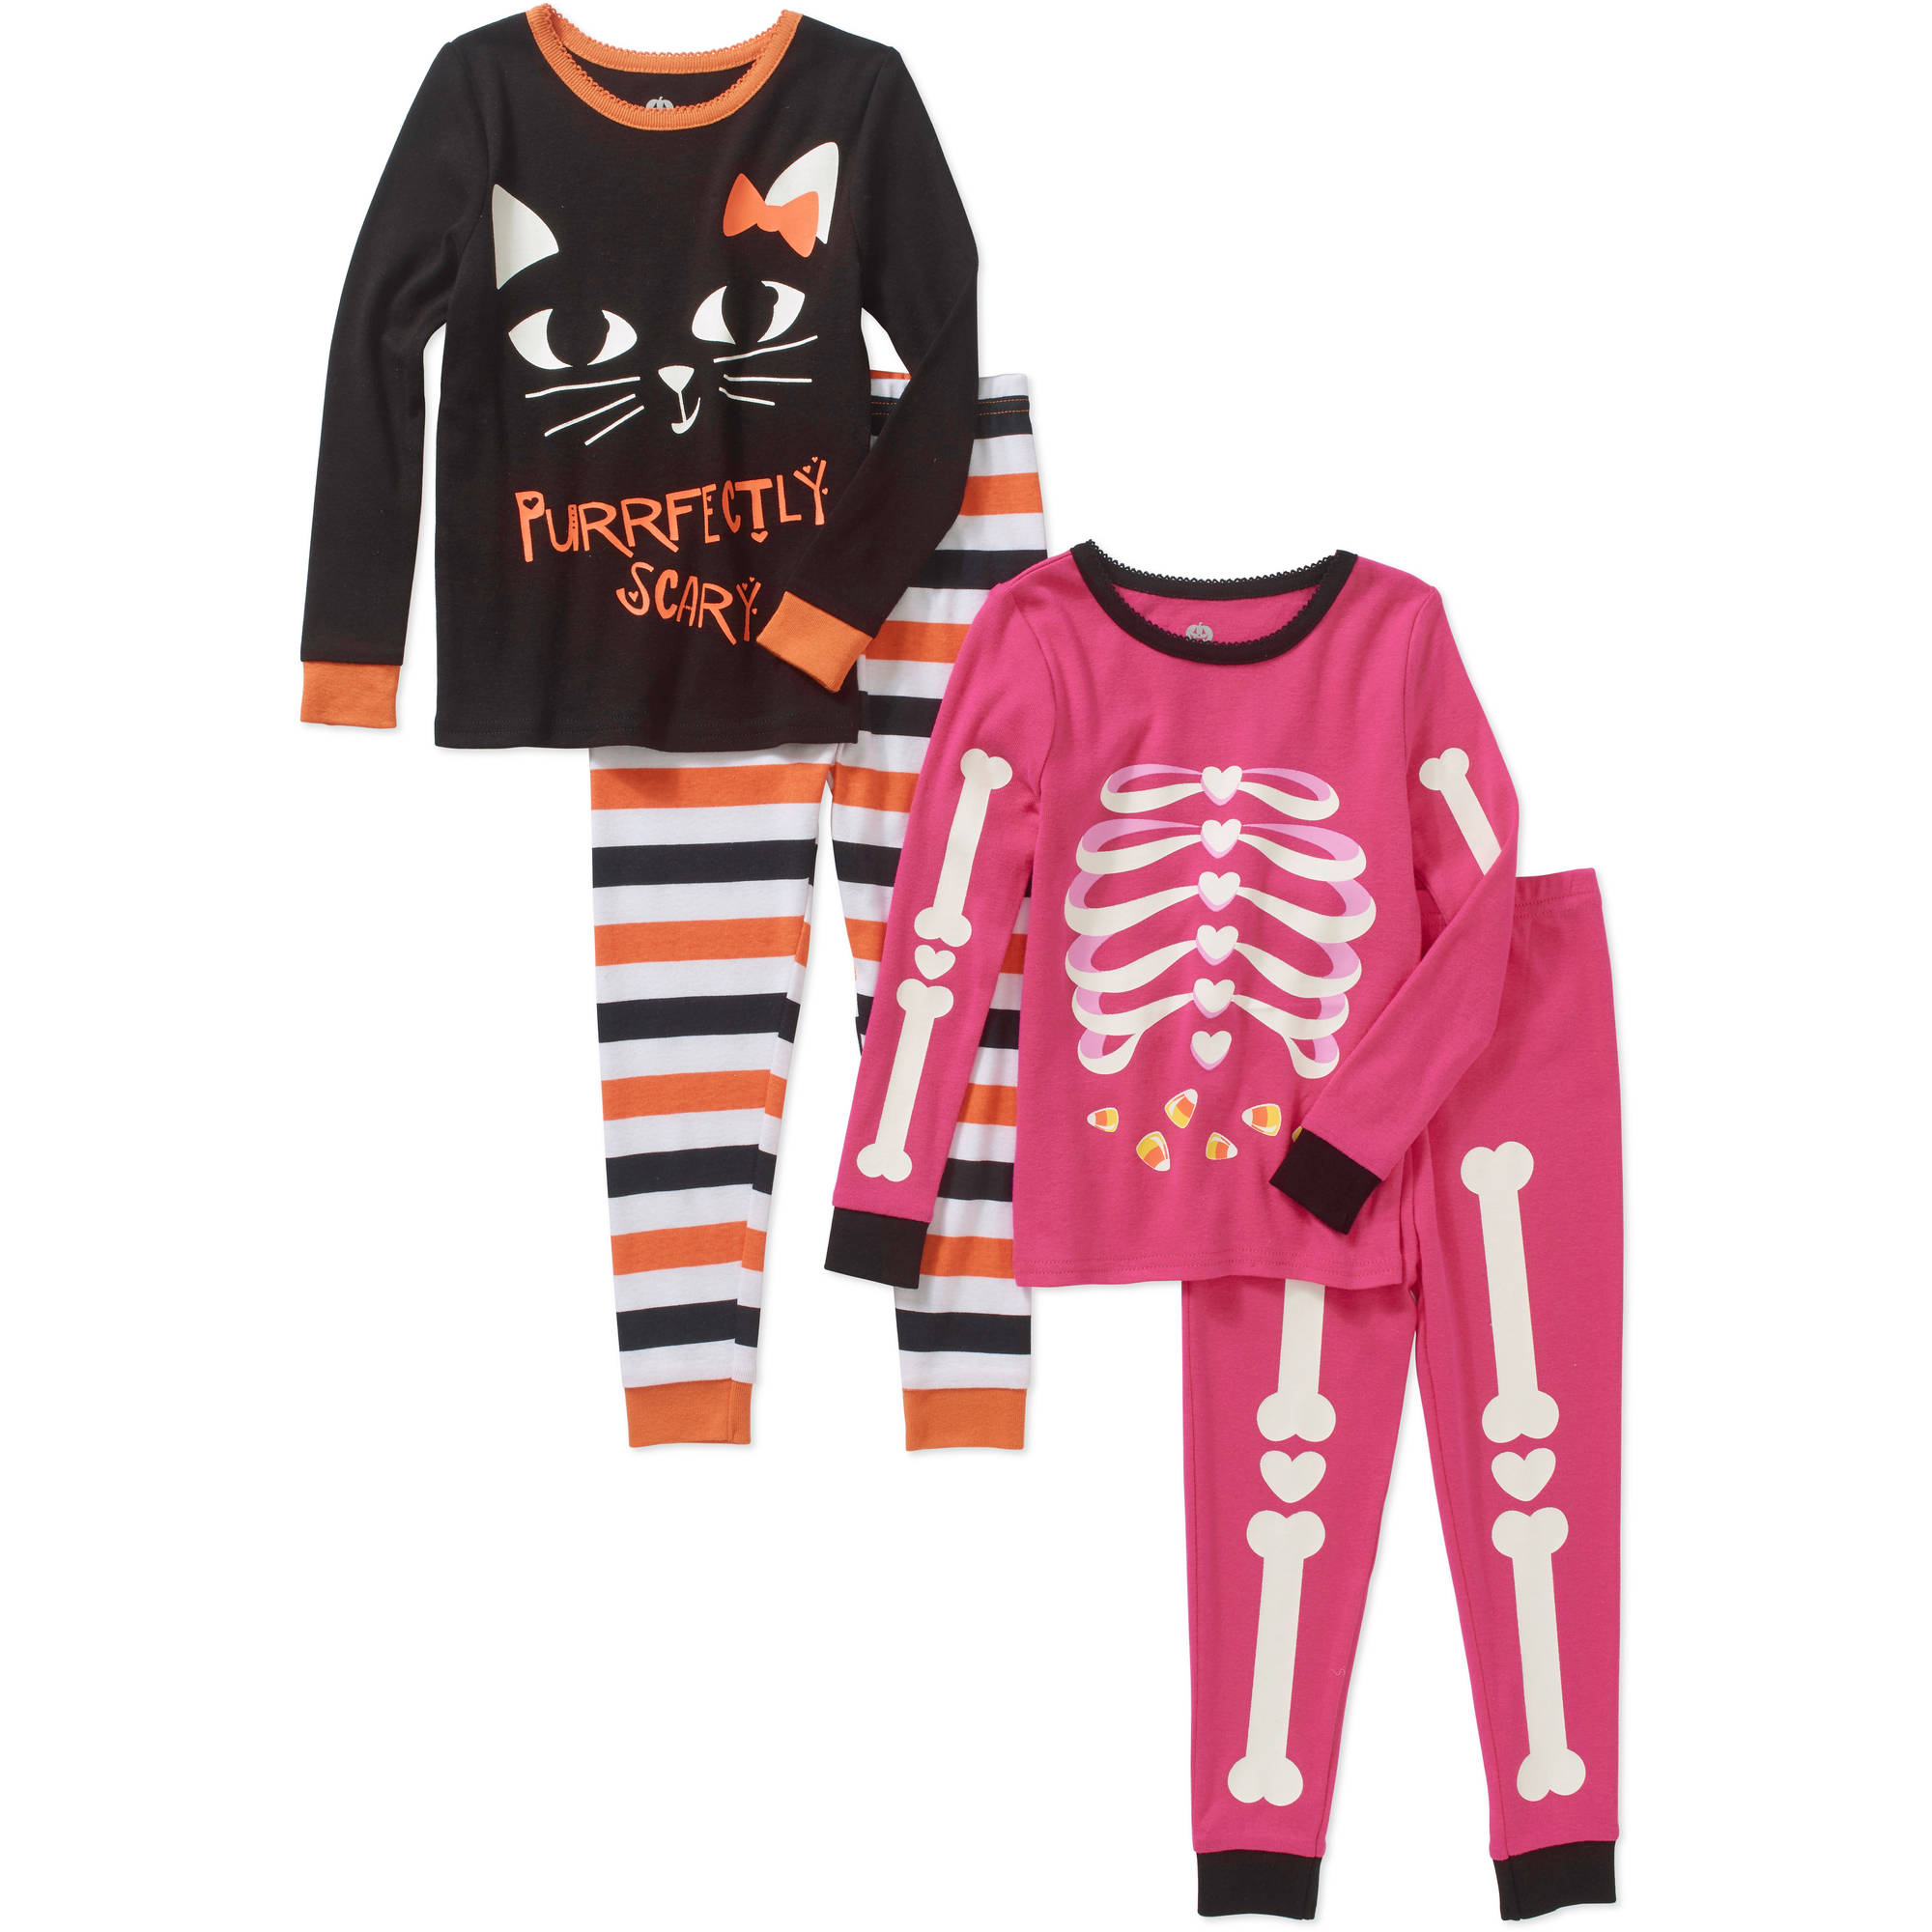 Shop for halloween pajamas women online at Target. Free shipping on purchases over $35 and save 5% every day with your Target REDcard.